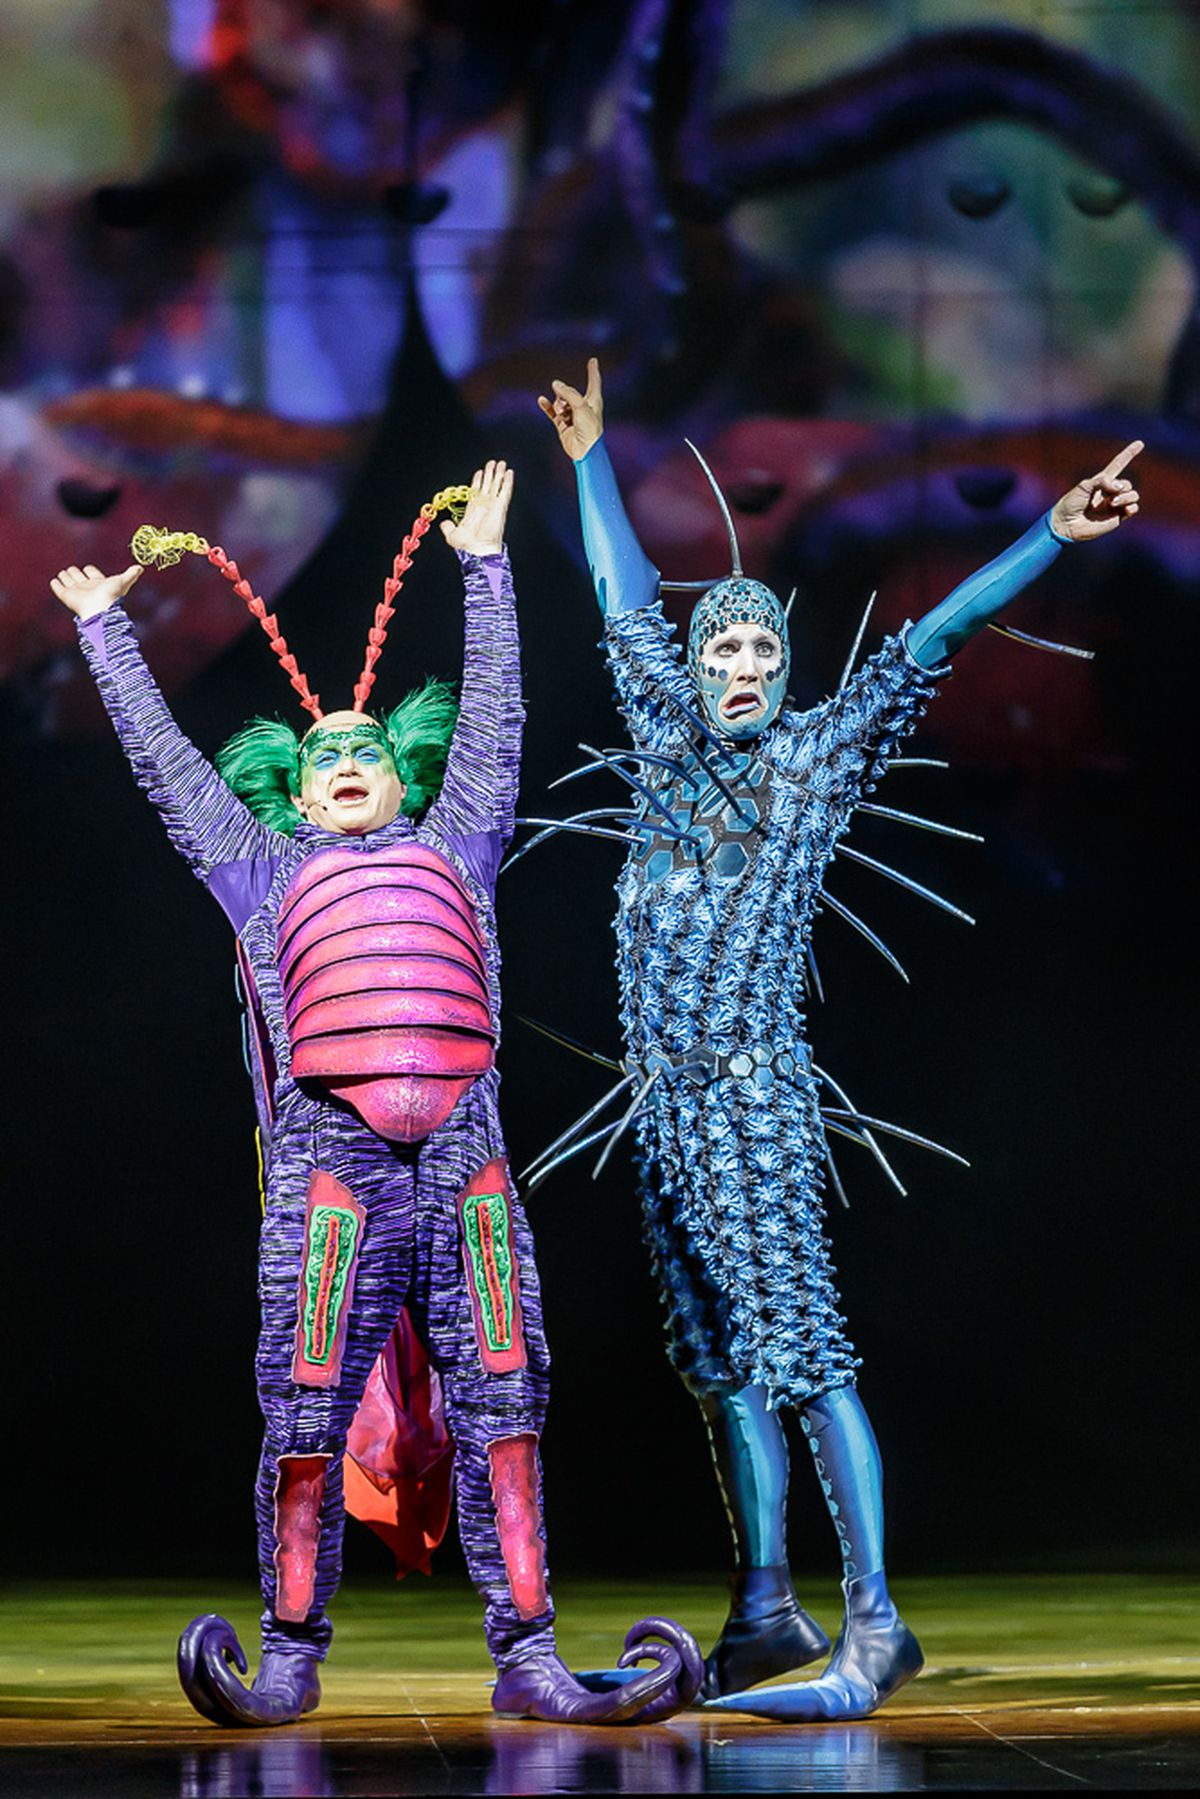 Cirque du Soleil OVO. Pictures by: Chris Bowley